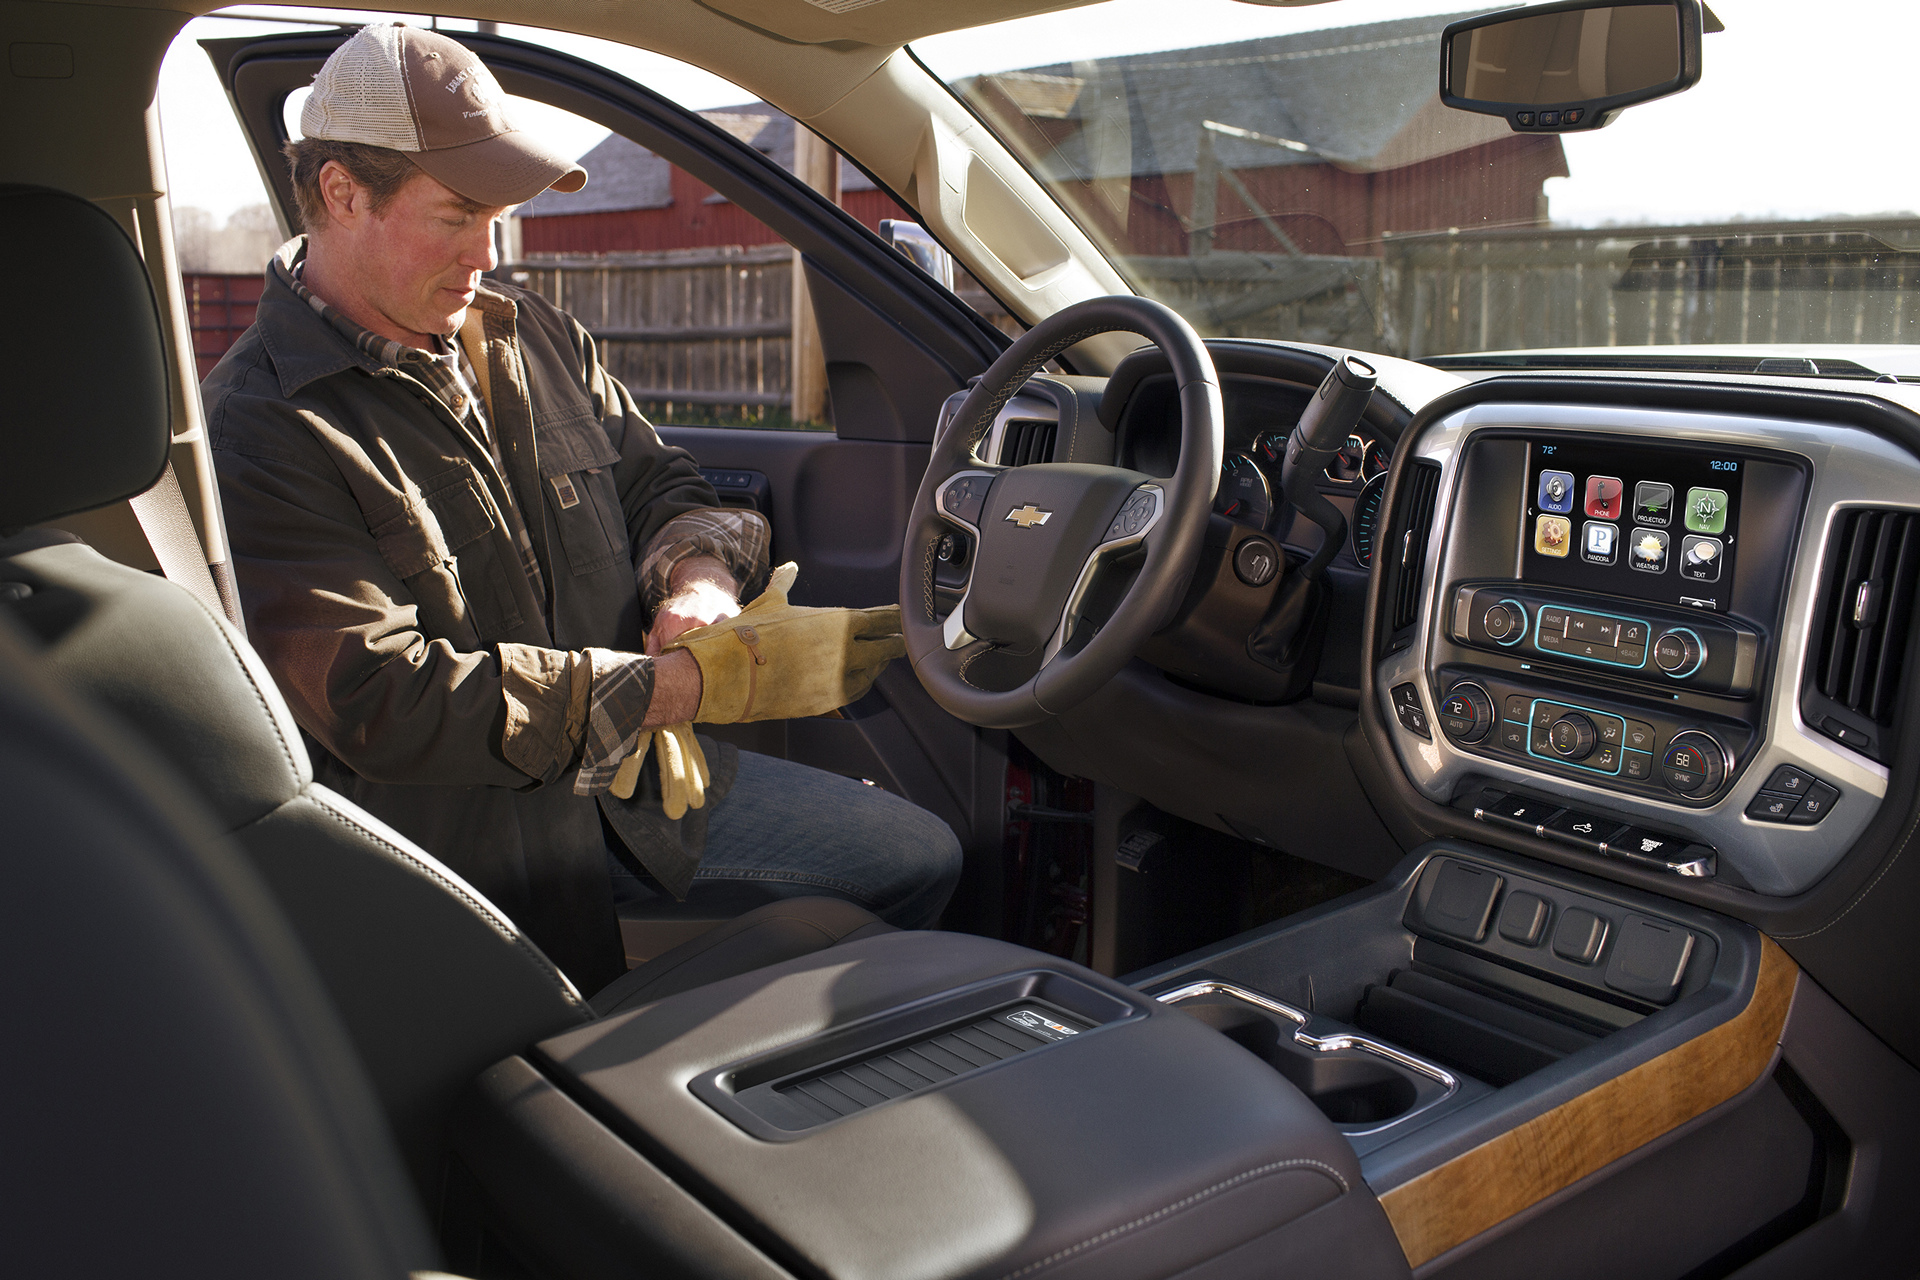 2016 Chevrolet Silverado 2500 HD interior © General Motors